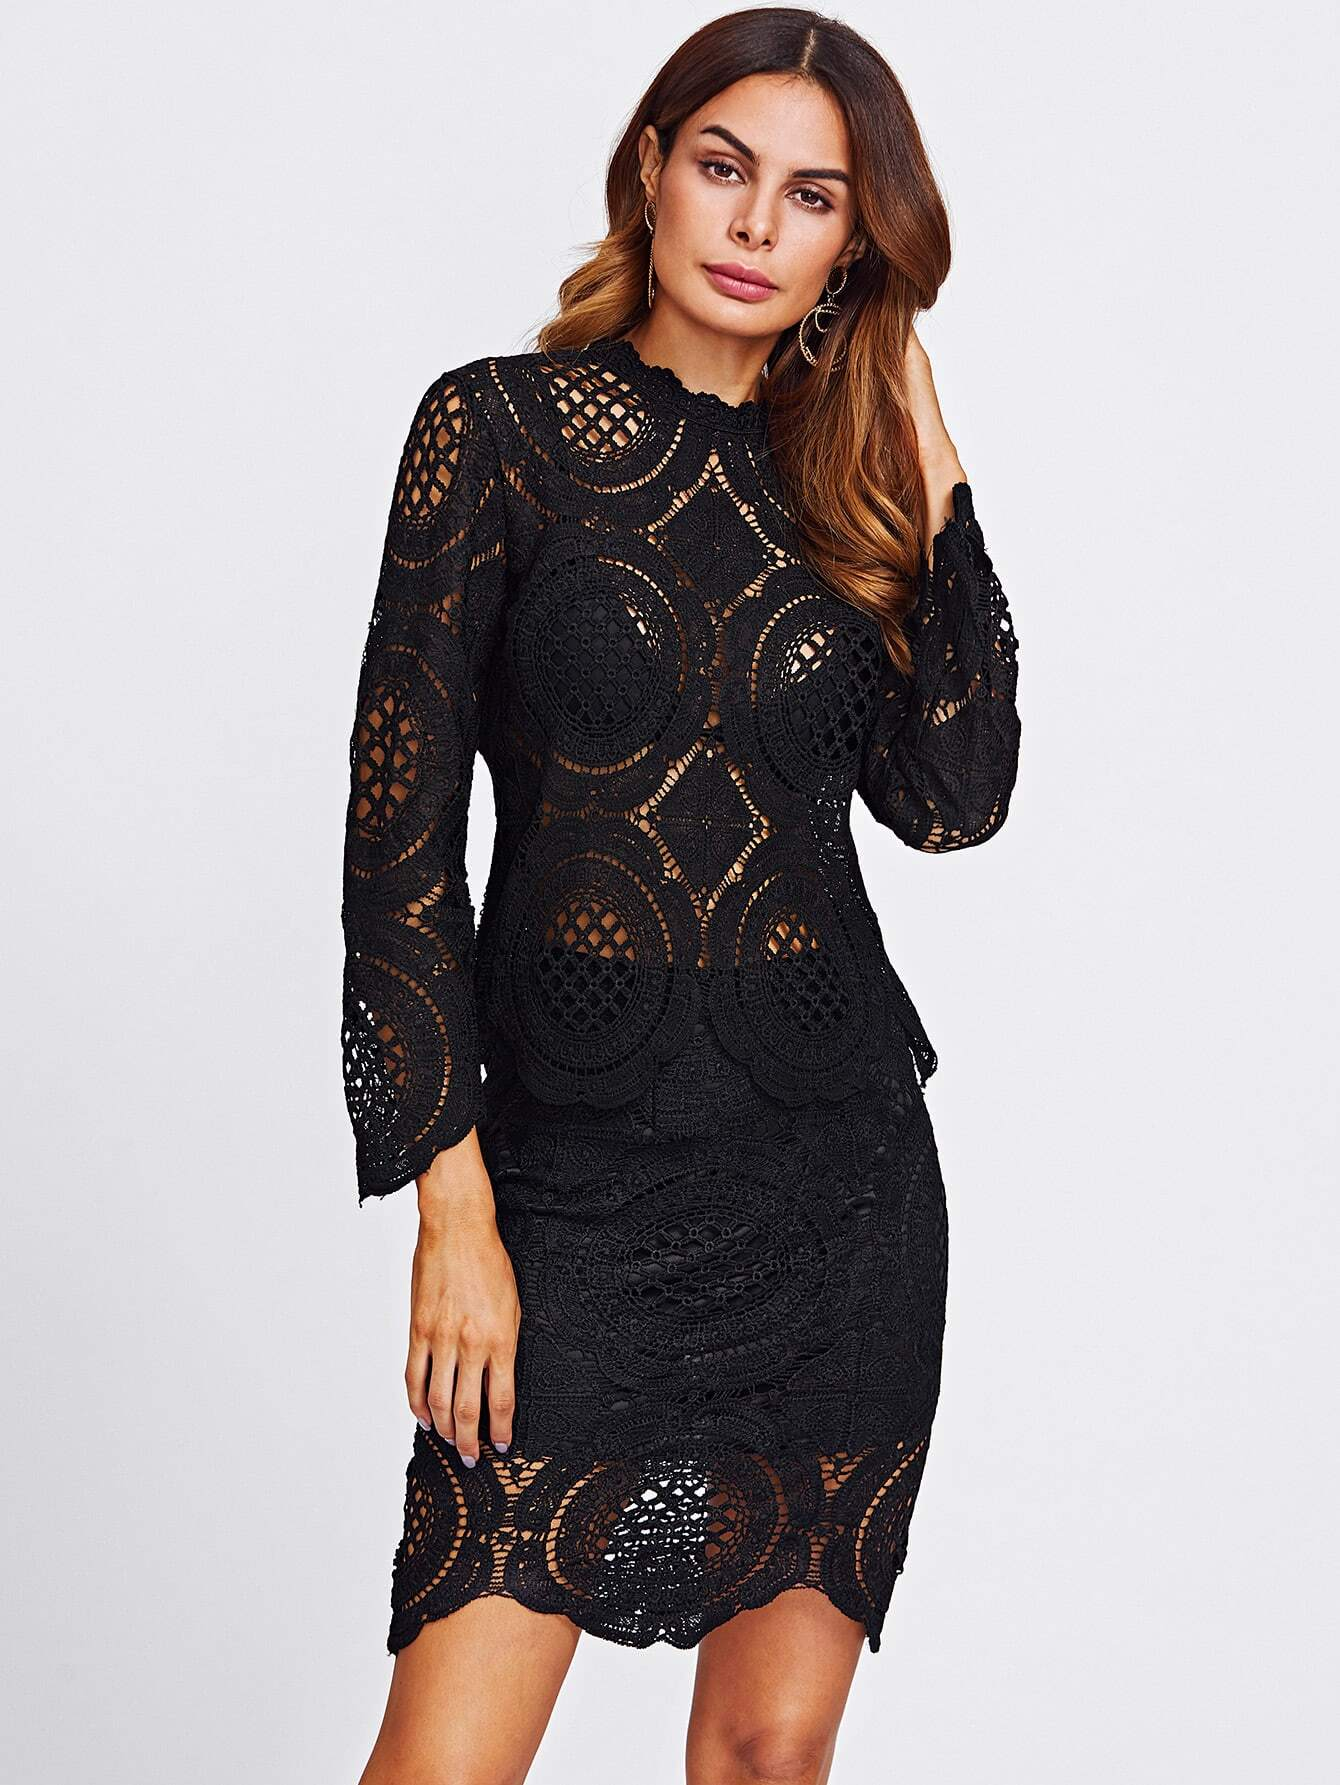 Crochet Lace Hollow Out Top And Skirt